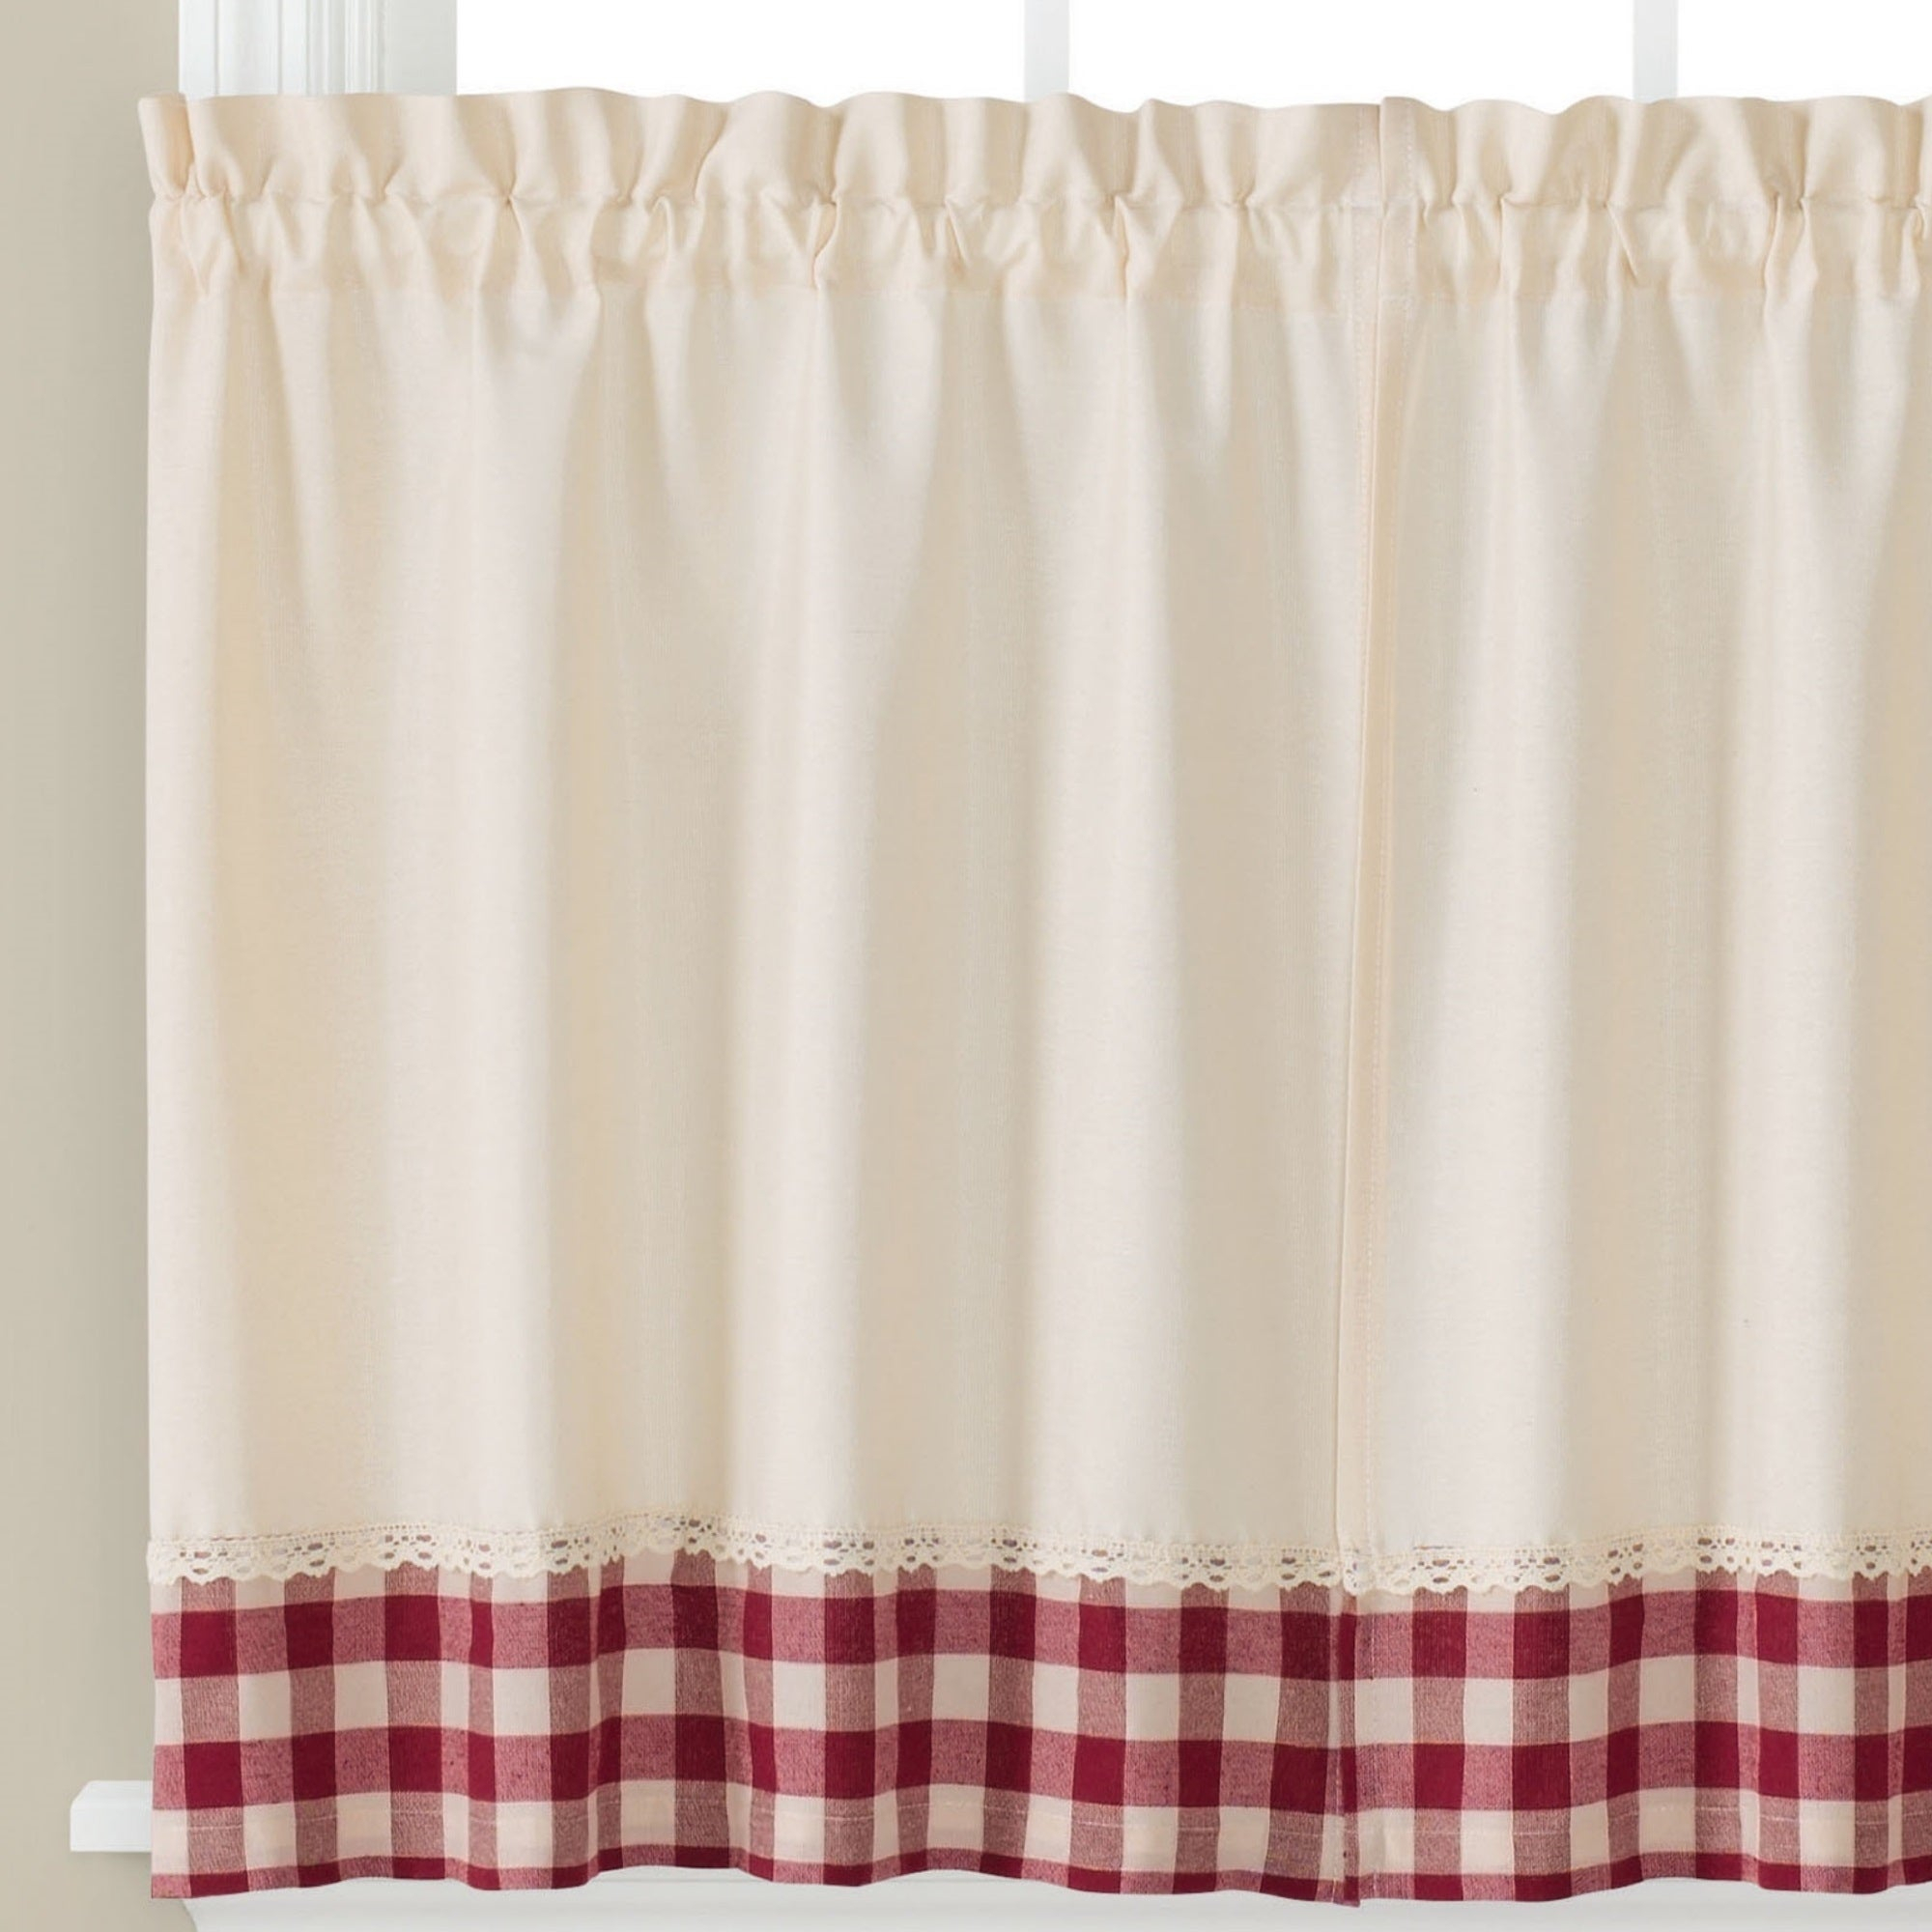 Skl Home Cumberland 24 Inch Tier Pair In Garnet Inside Cumberland Tier Pairs In Dove Gray (View 13 of 20)